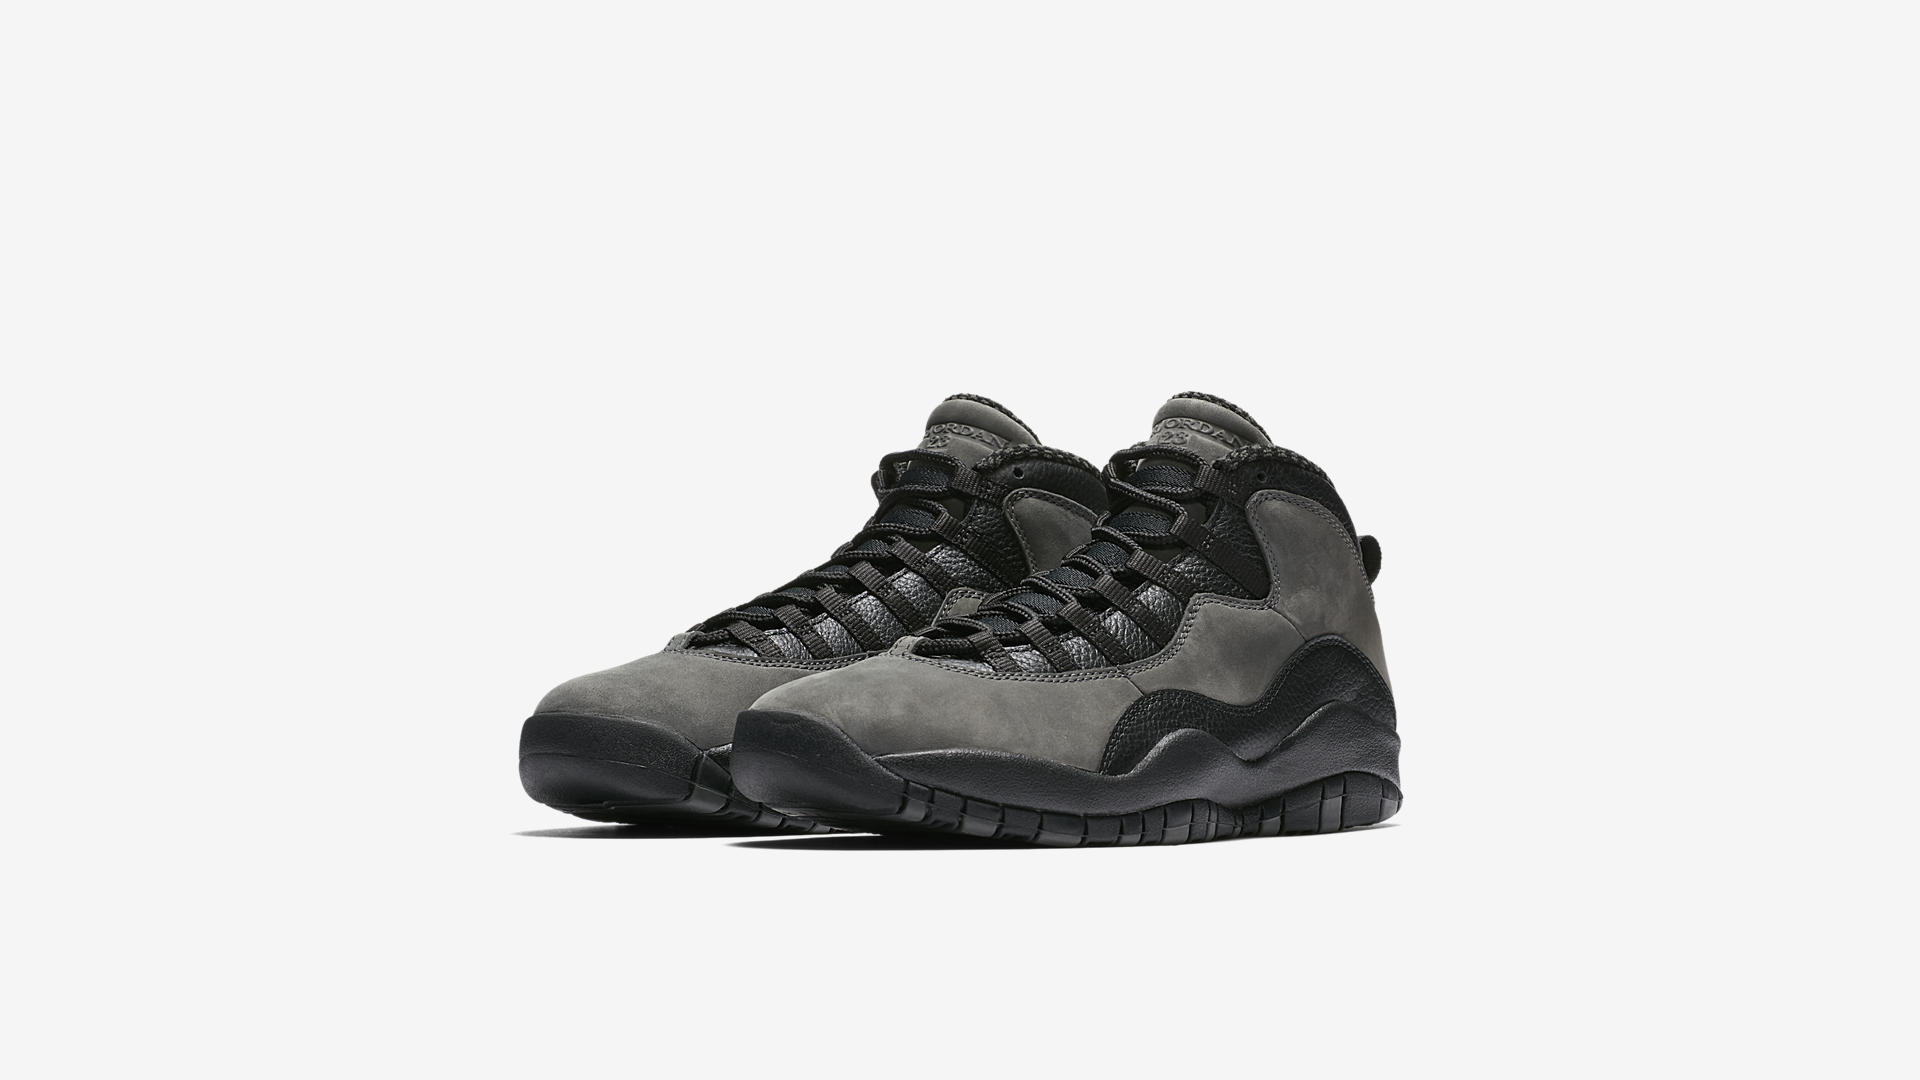 310805 002 Air Jordan 10 Retro Shadow 1